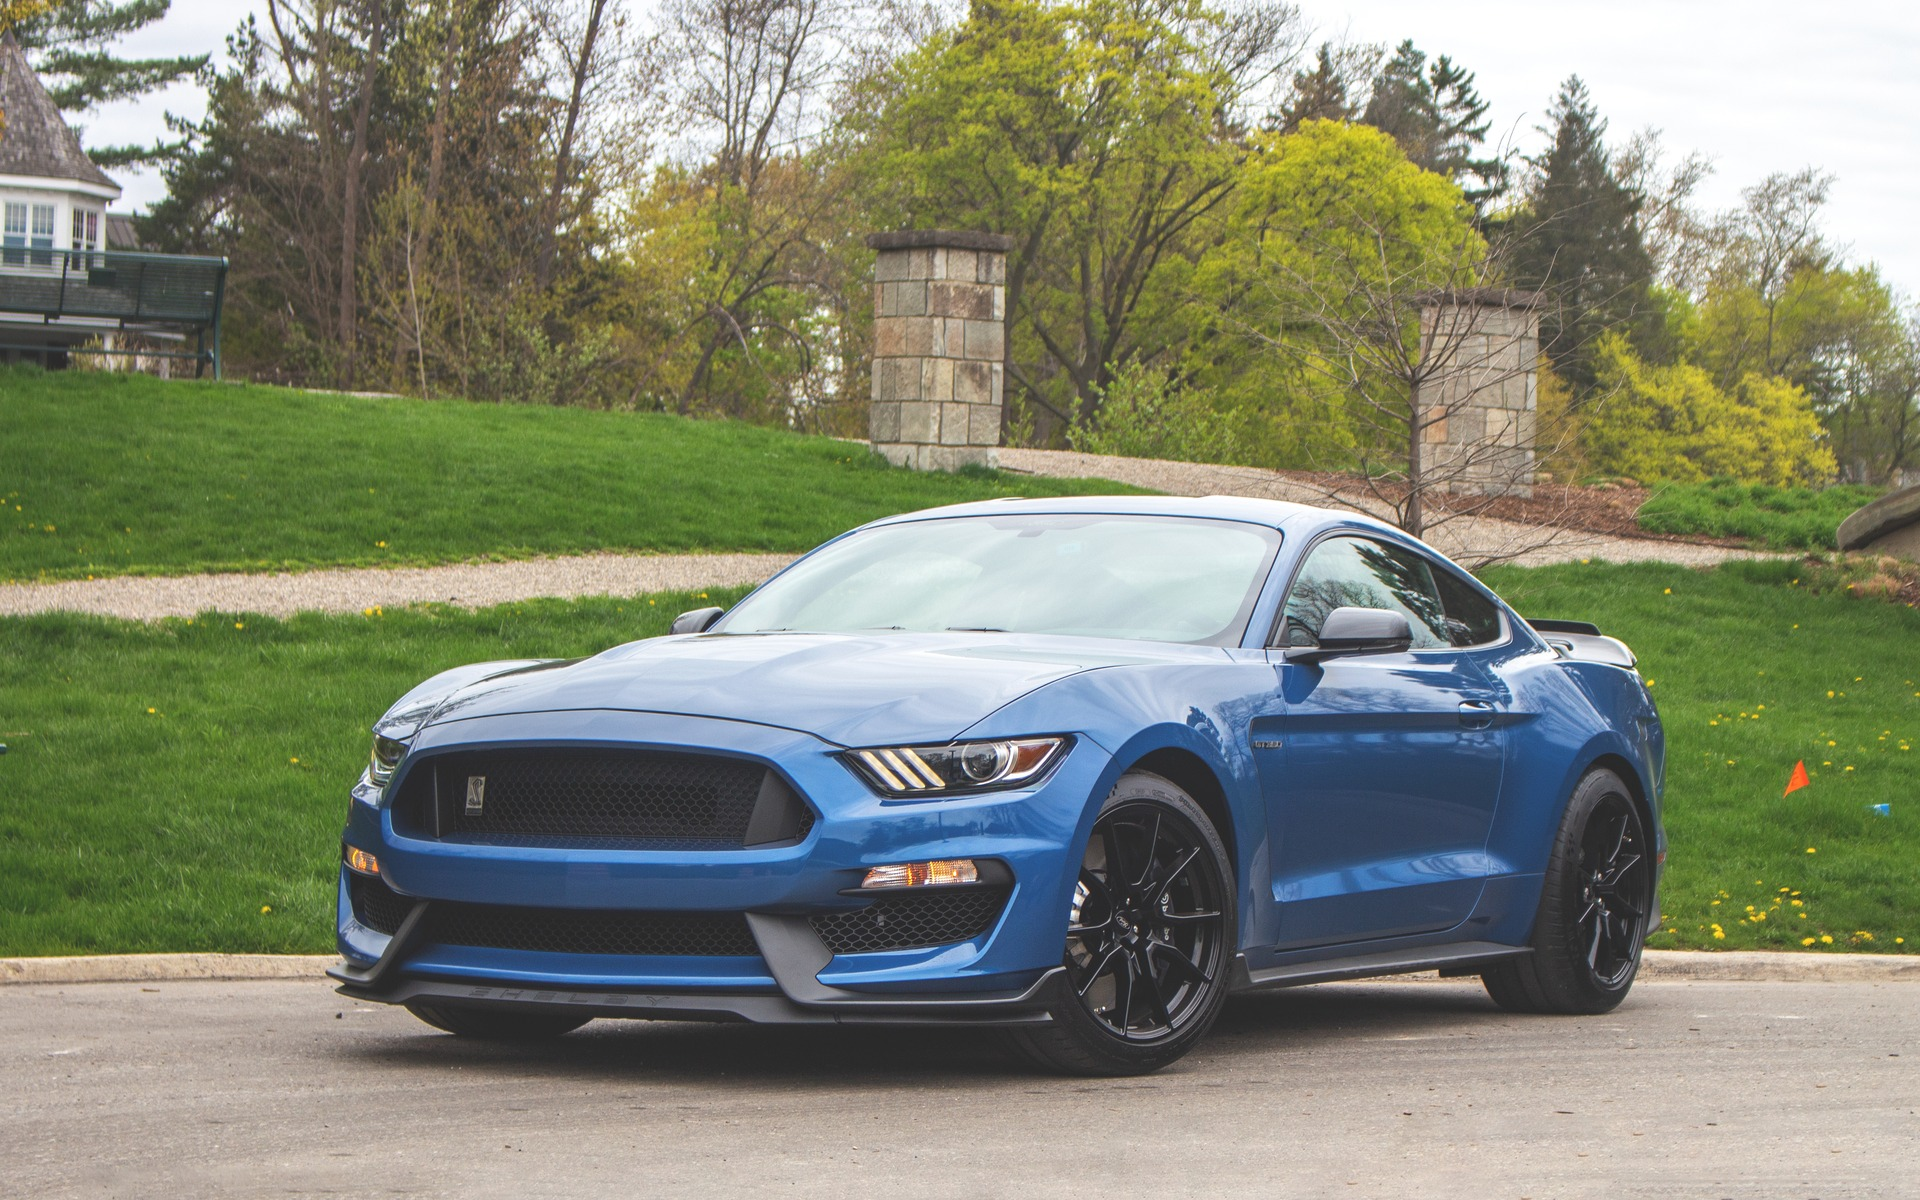 Ford Mustang Shelby GT350 2019 : je ne changerai jamais 376749_2019_Ford_Mustang